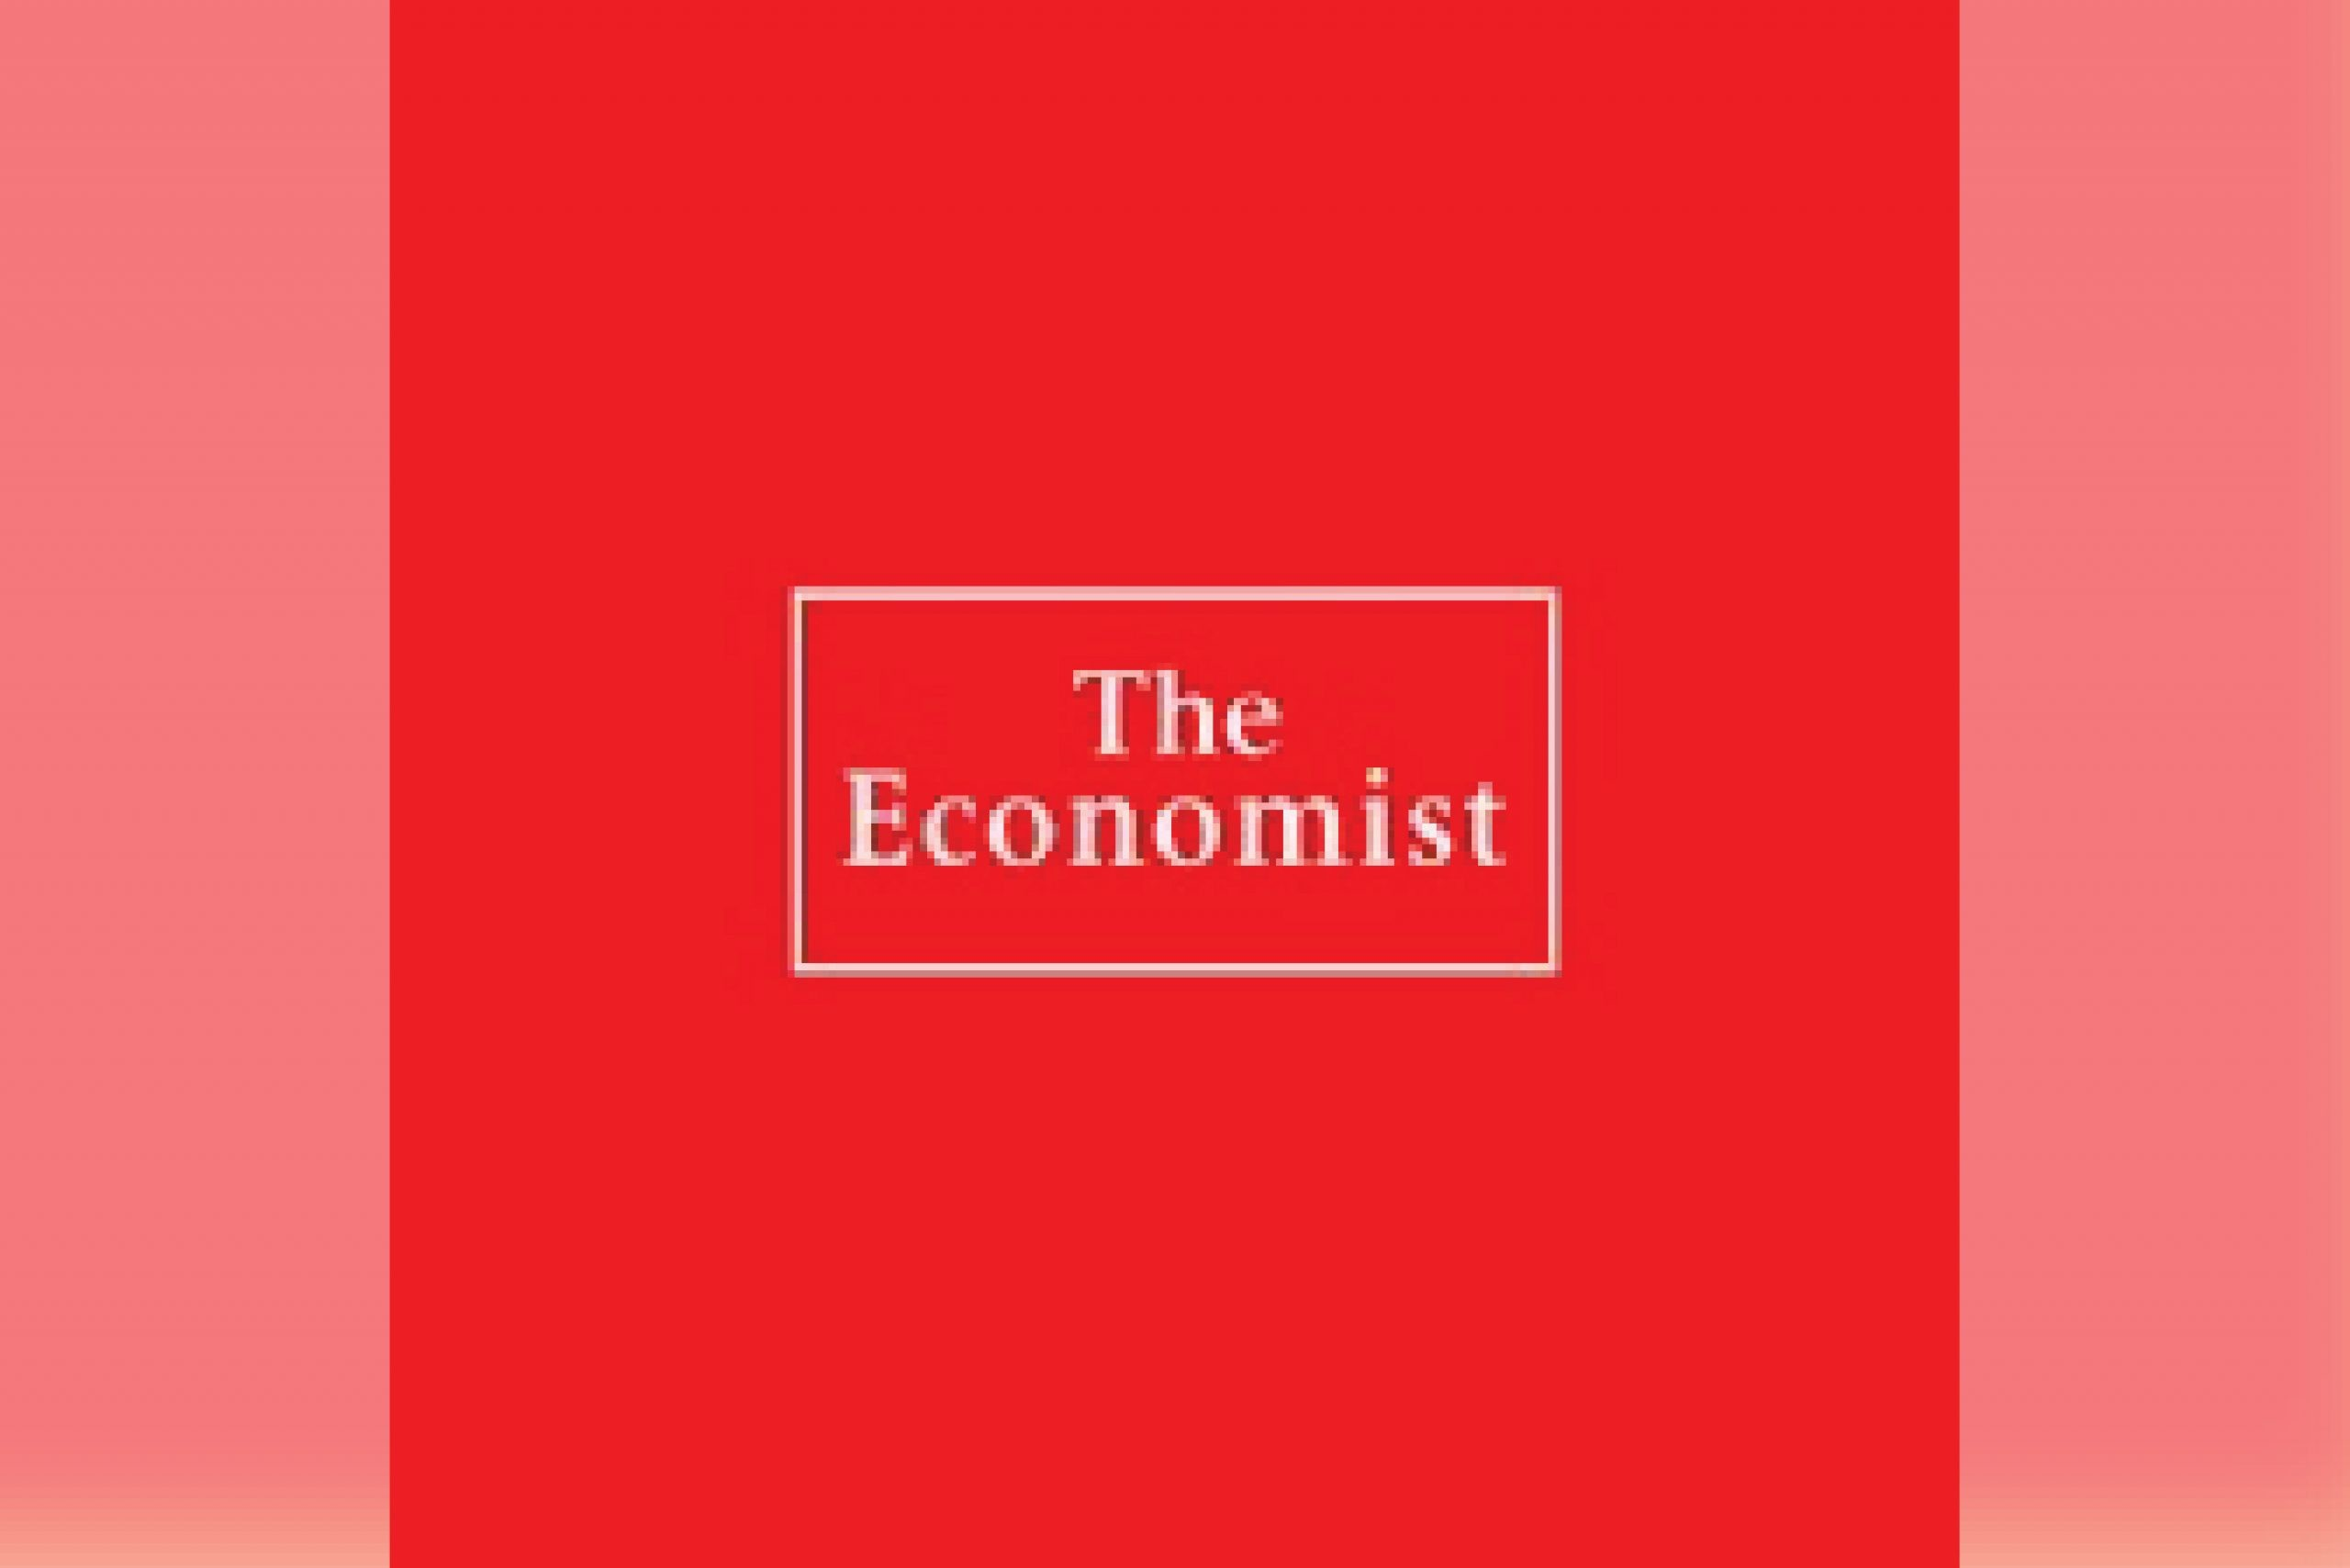 the-economist-01-scaled.jpg